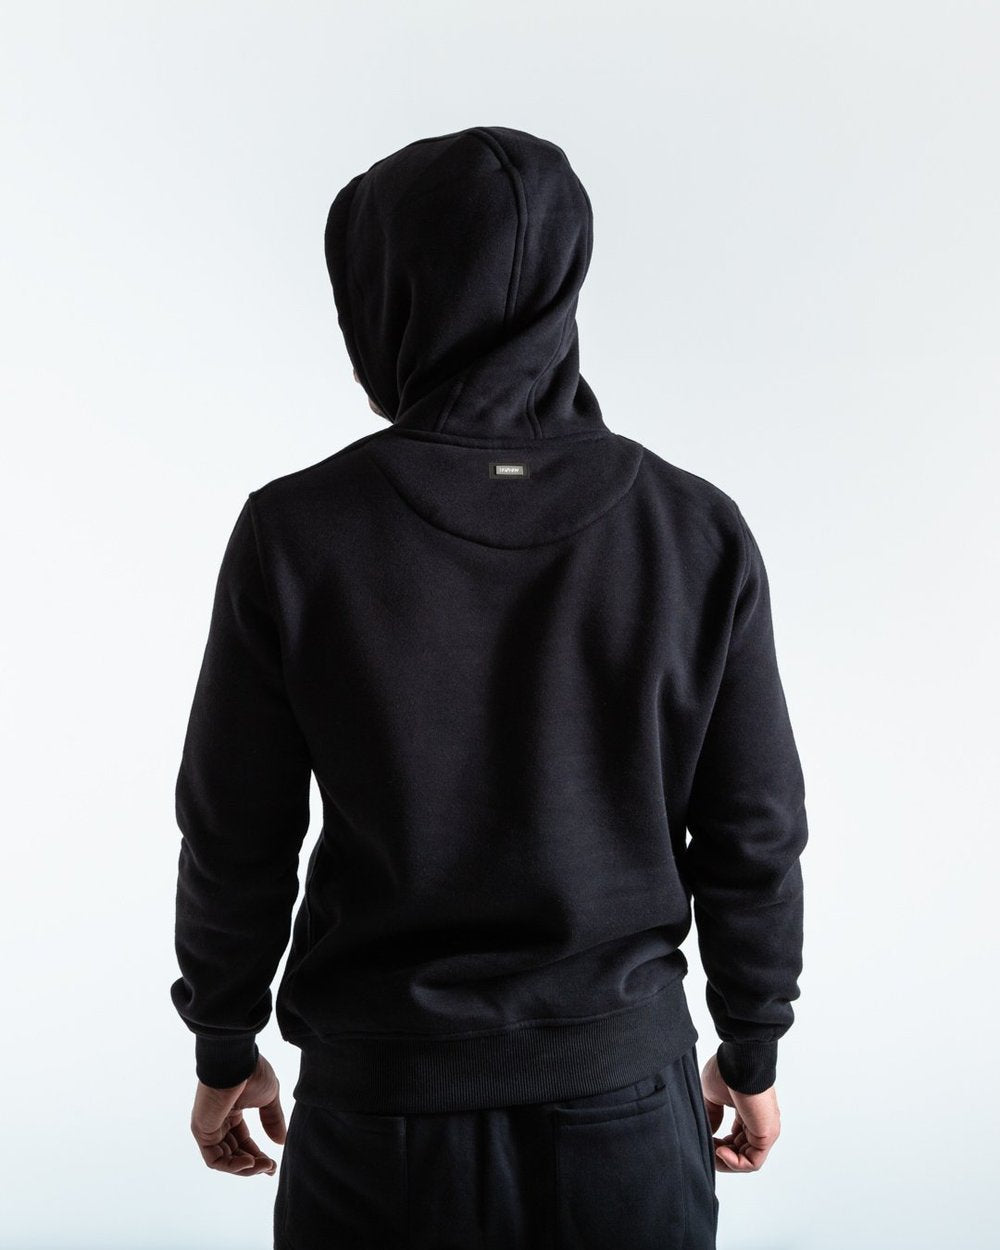 REDEMPTION HOODIE - BLACK - Pandemic Fight Gear Inc.